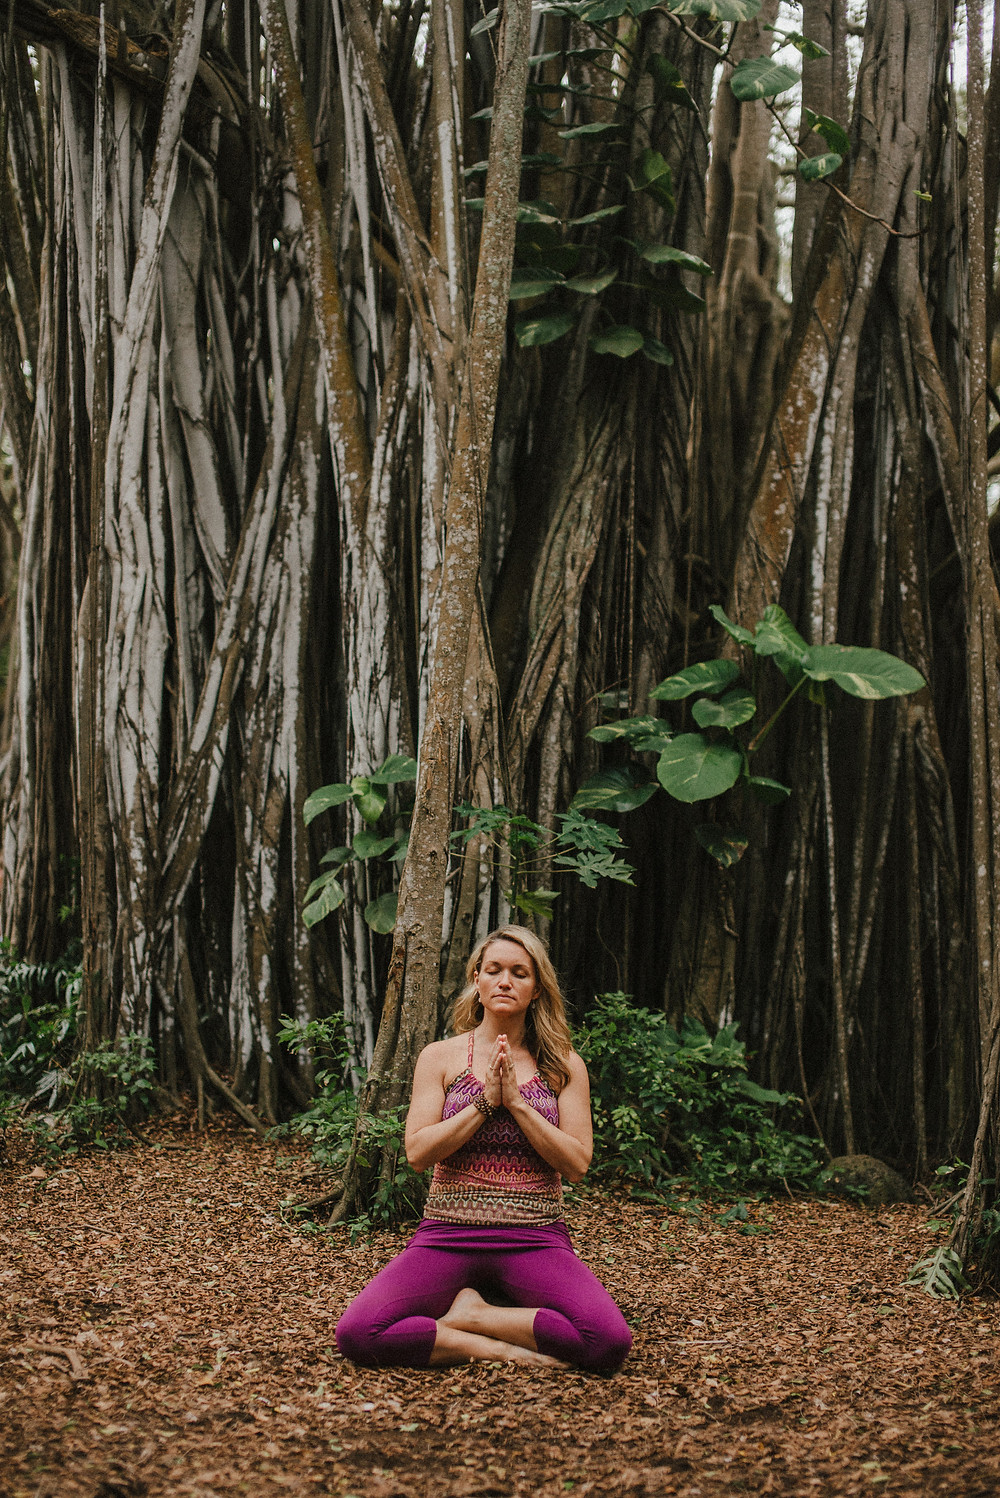 Finding the quiet in the banyan tree